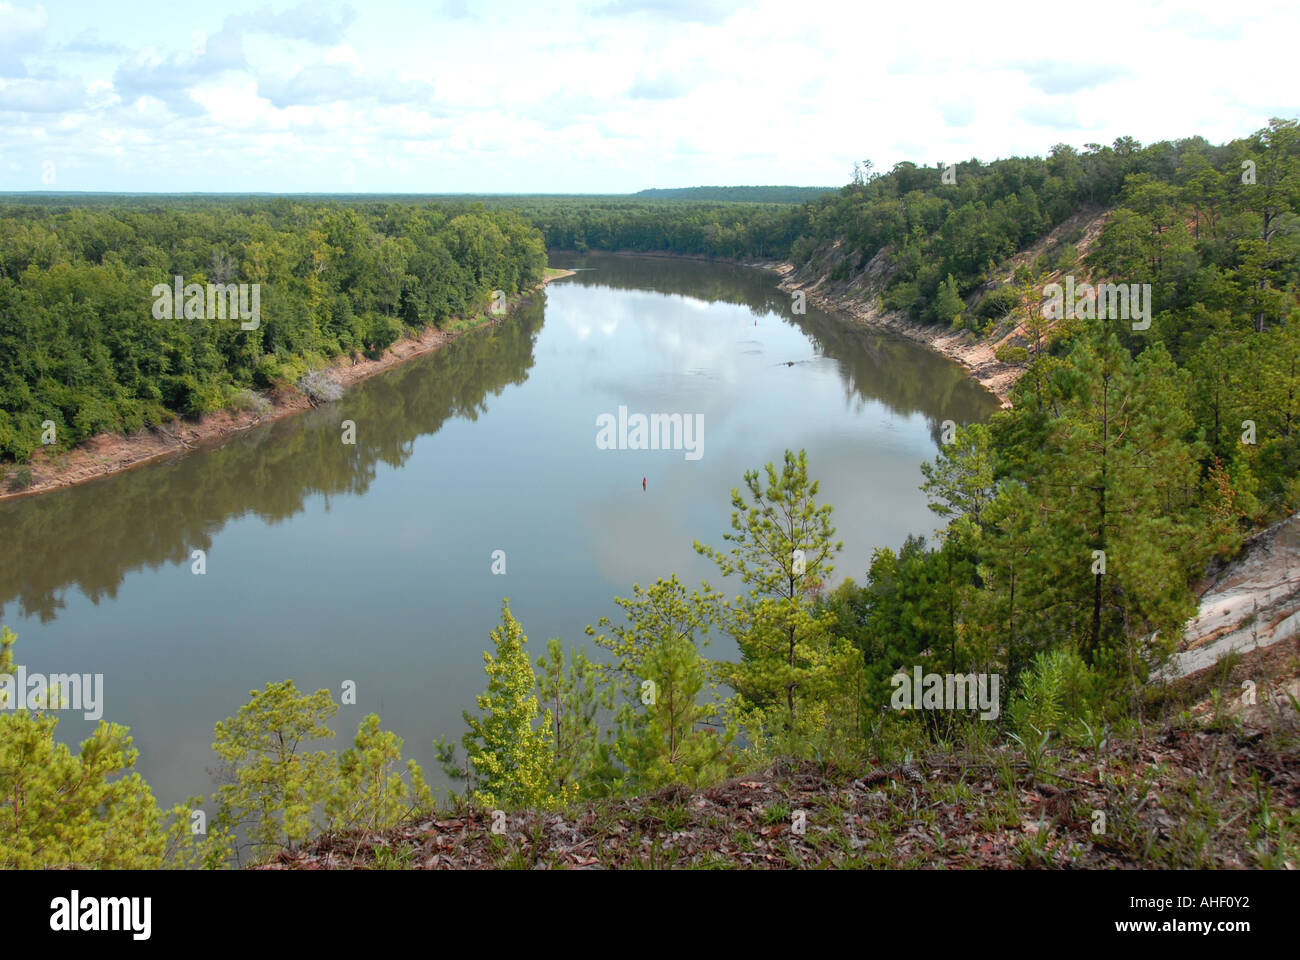 Garden Of Eden Hiking Trail View From Alum Bluff Above Apalachicola Stock Photo 8259505 Alamy